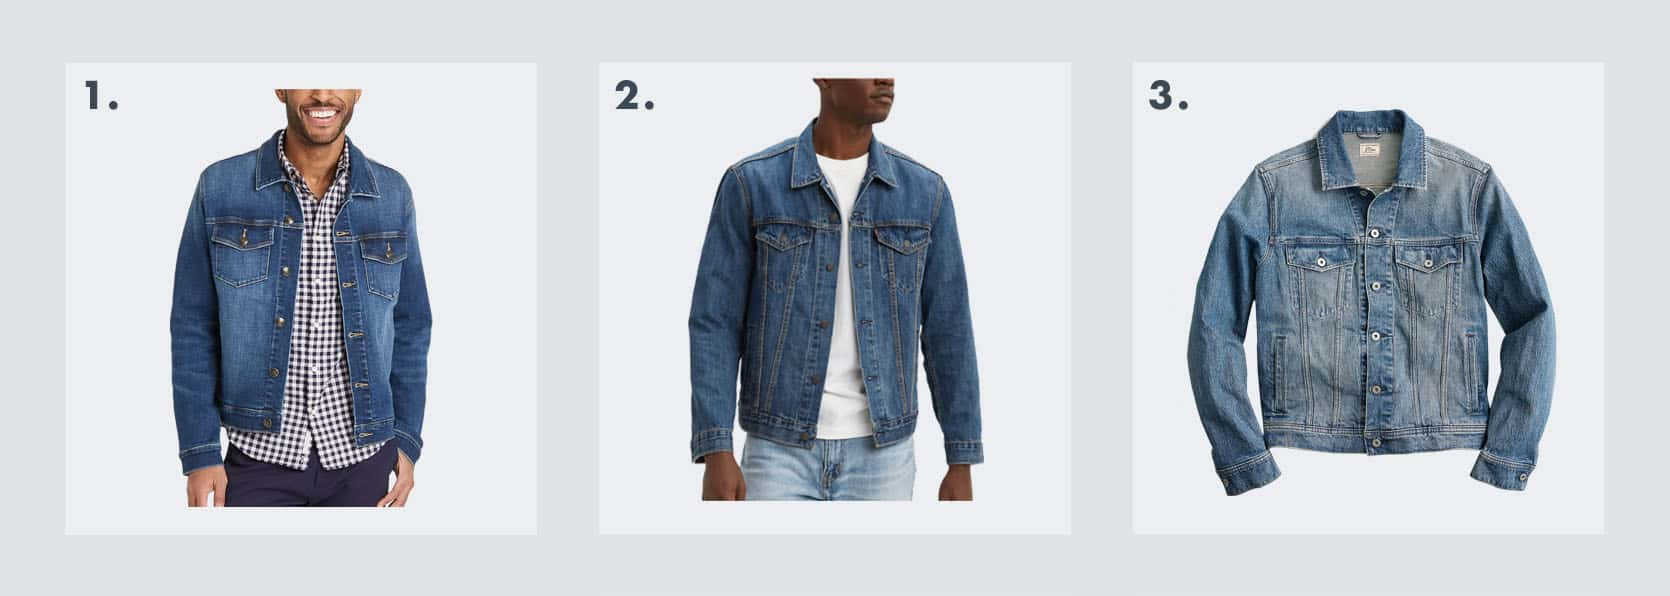 Emily Henderson Fathers Day Gift Guide Denim Jackets